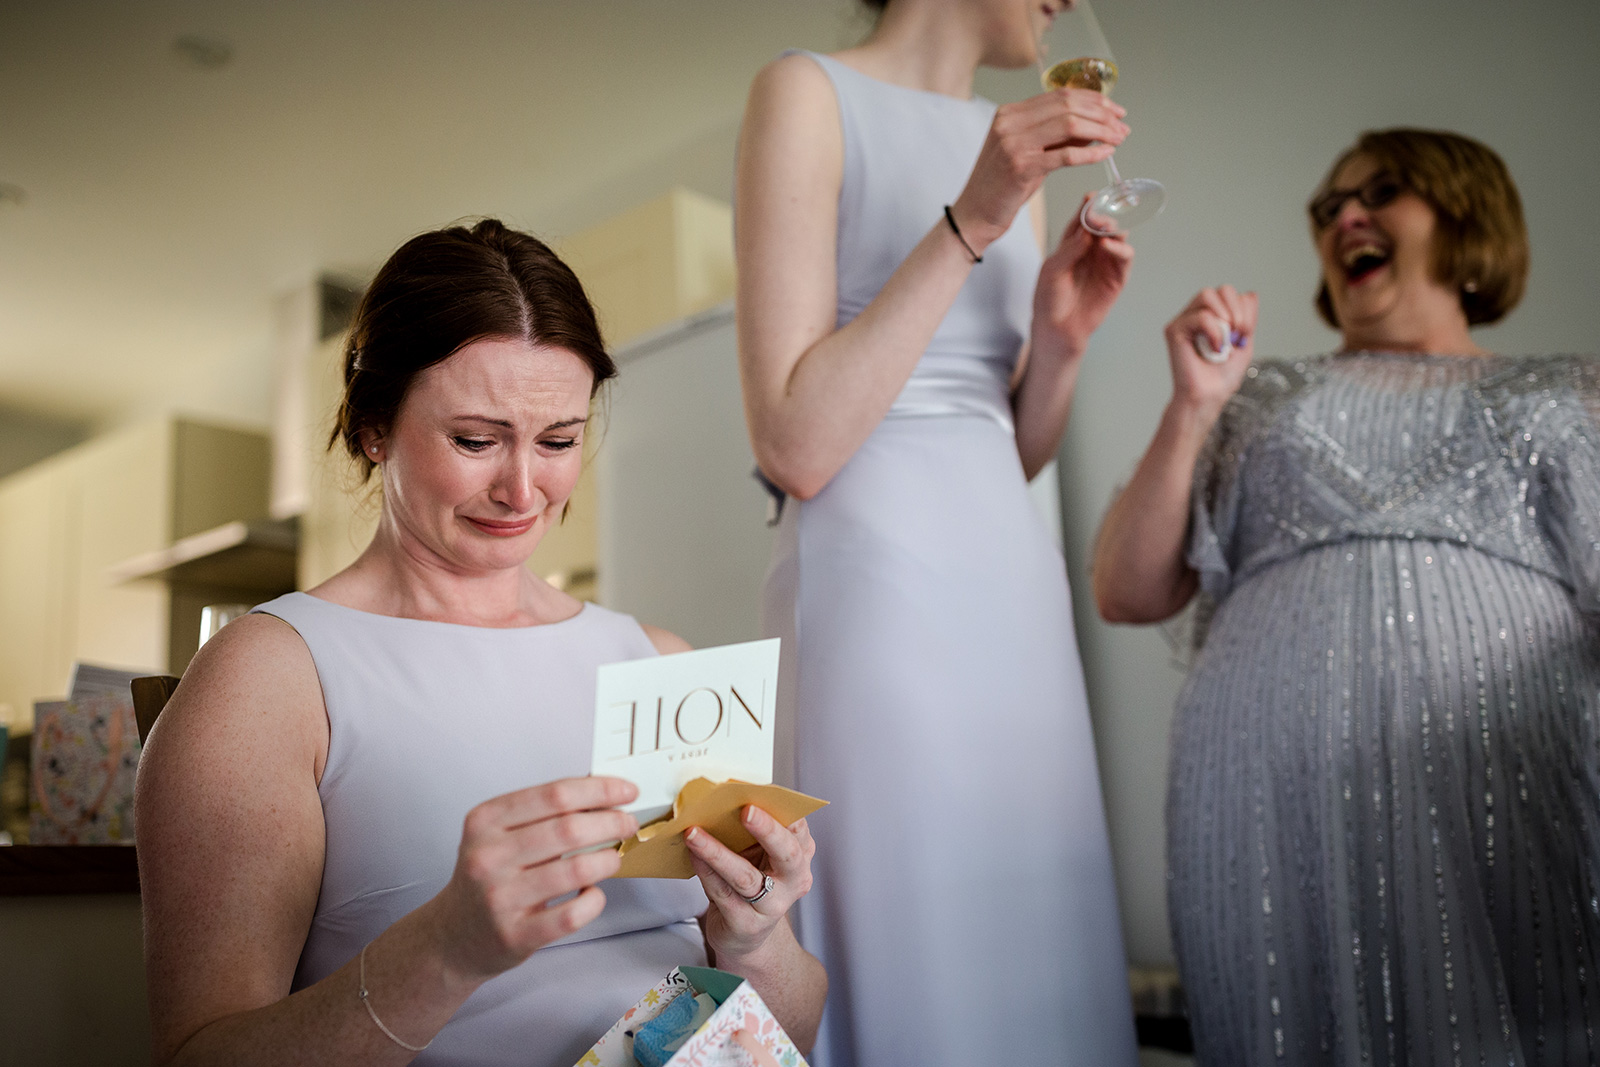 Bridesmaids during the bridal prep